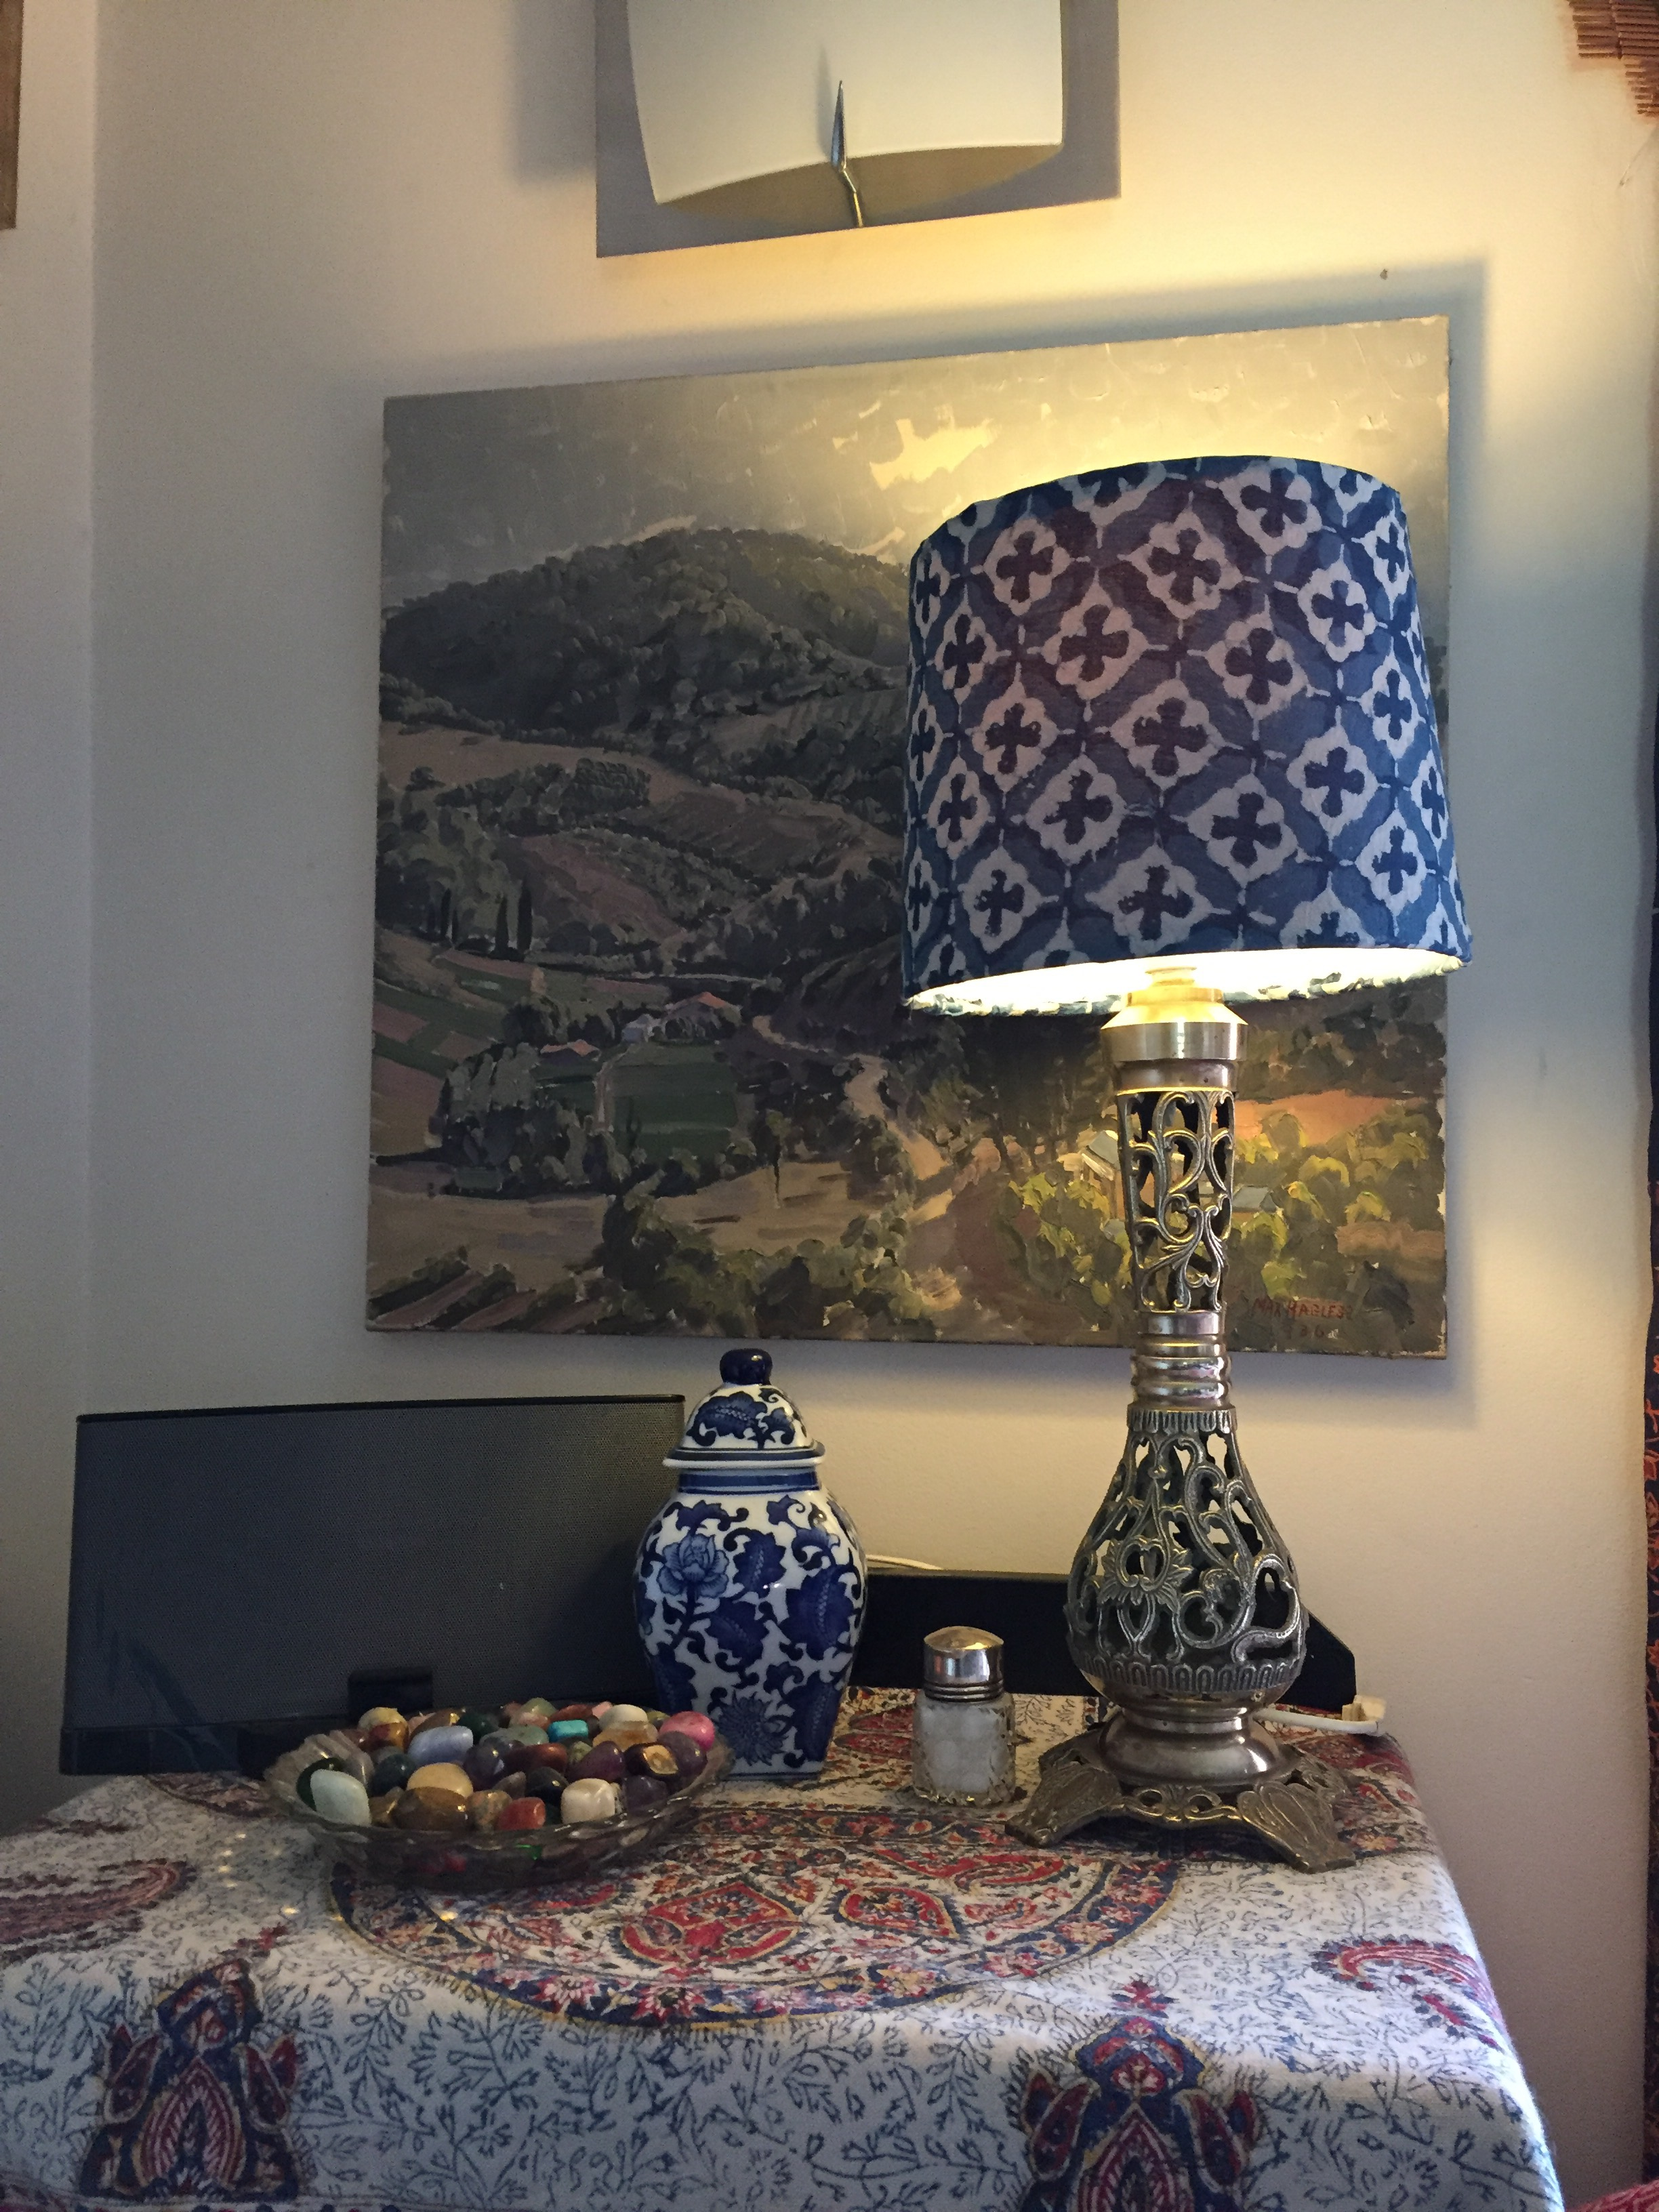 Upcycling a Lamp